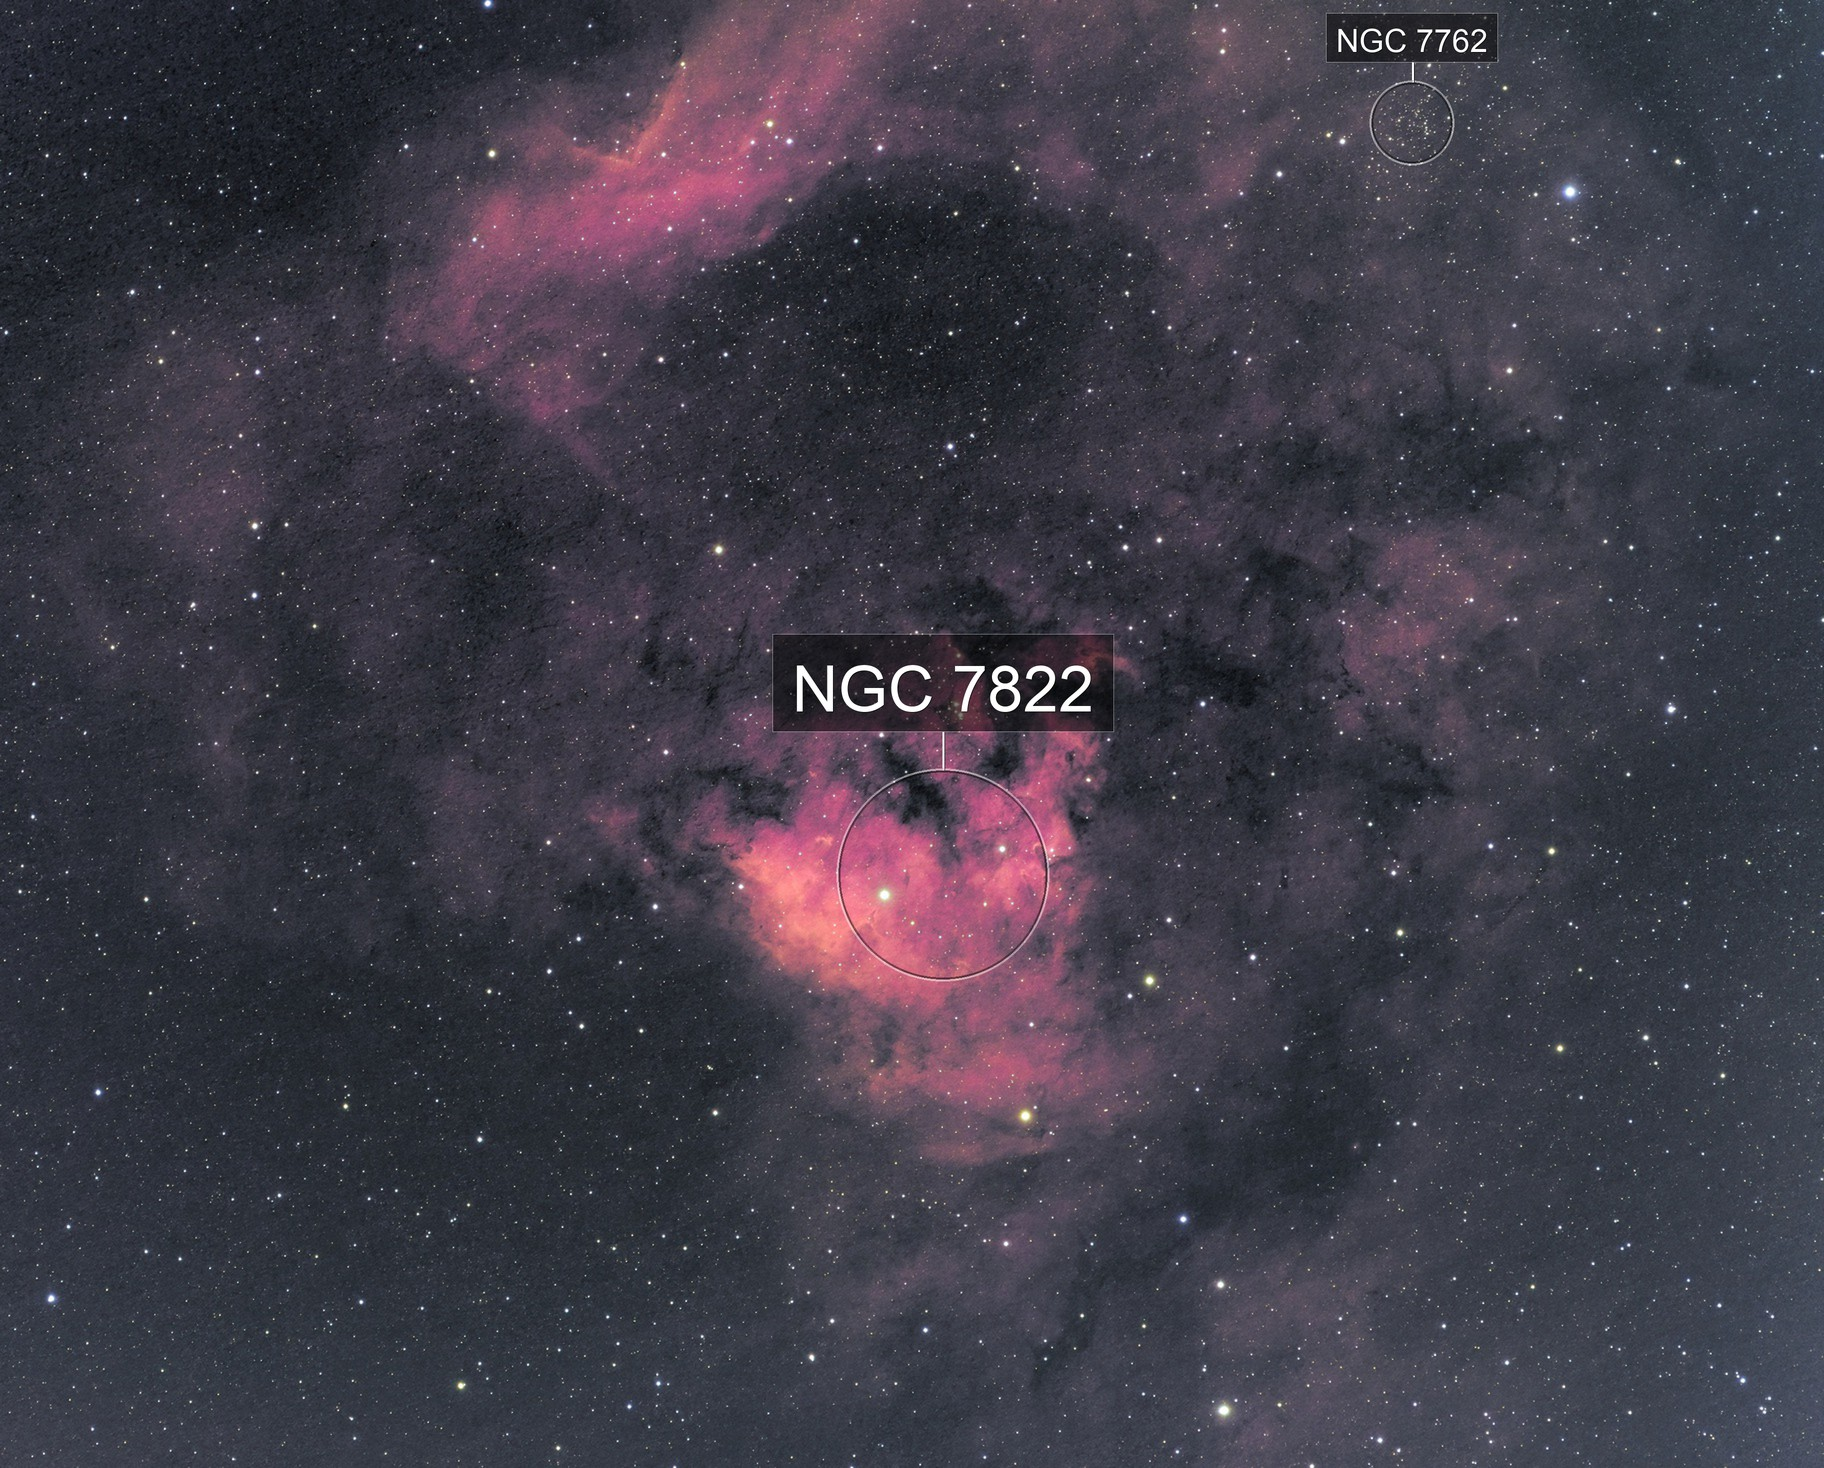 NGC 7822 and Ced 214